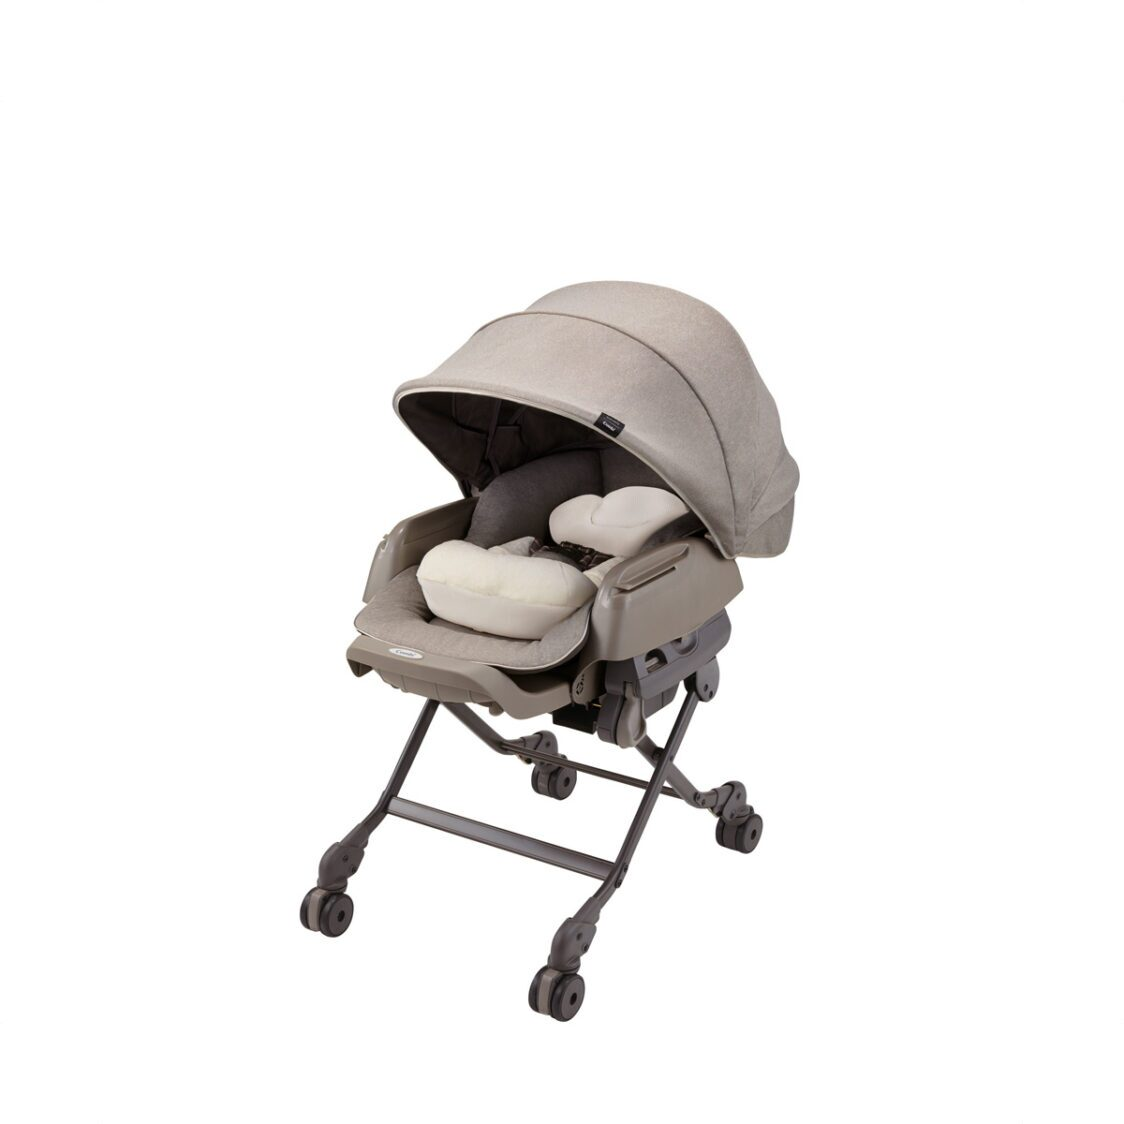 Combi BEDi Manual Swing Sand Beige Parenting Station New born4 Years Old 101KG